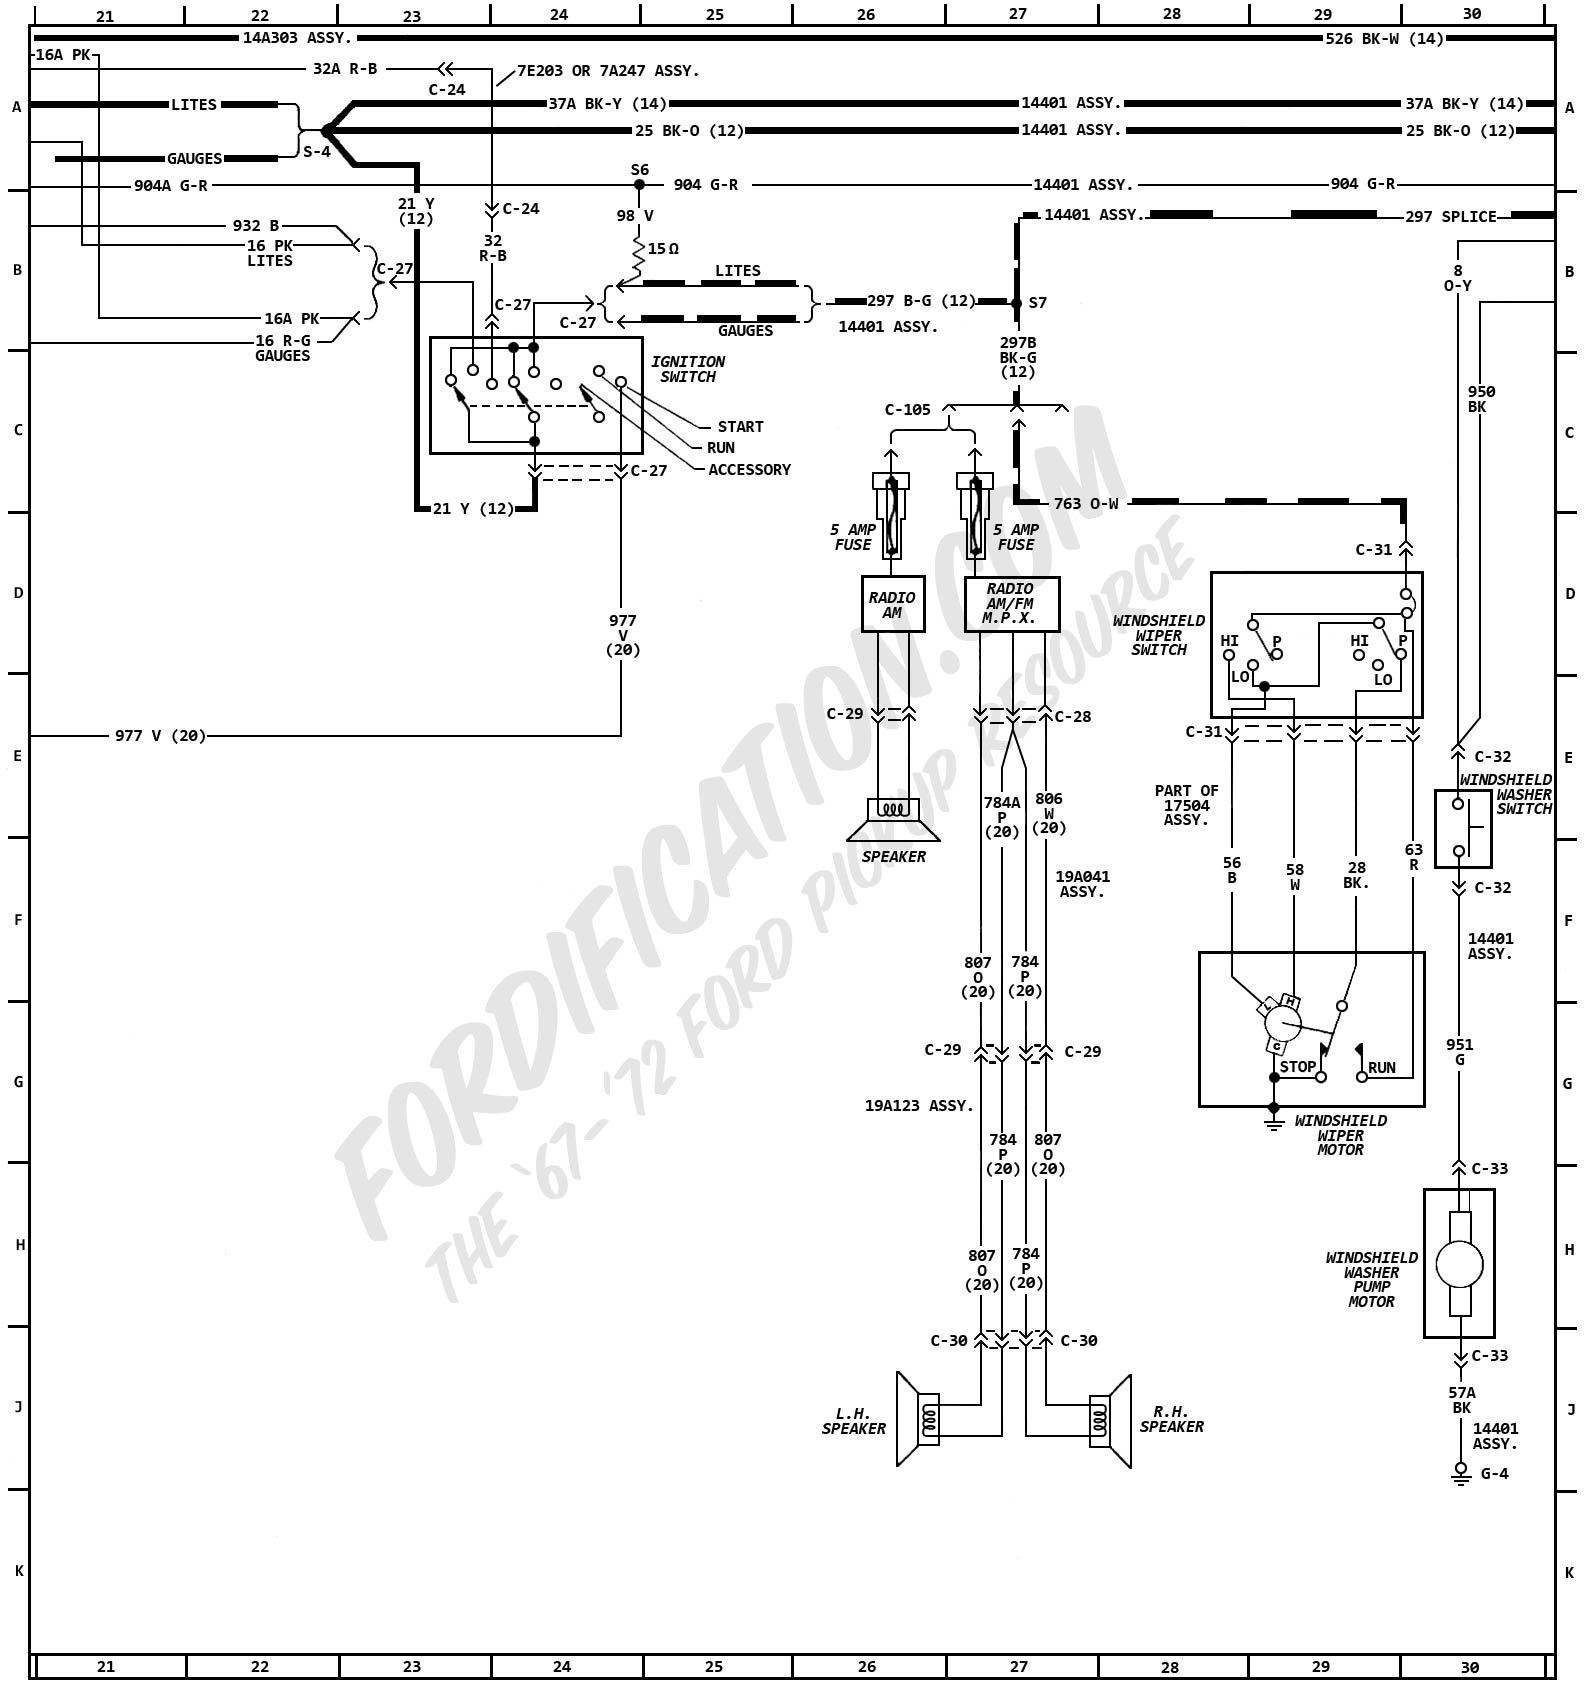 hight resolution of 1972 ford f 250 wiring diagram on wiring diagram 2001 ford f150 jeep wrangler wiring 1972 ford f100 wiring schematics